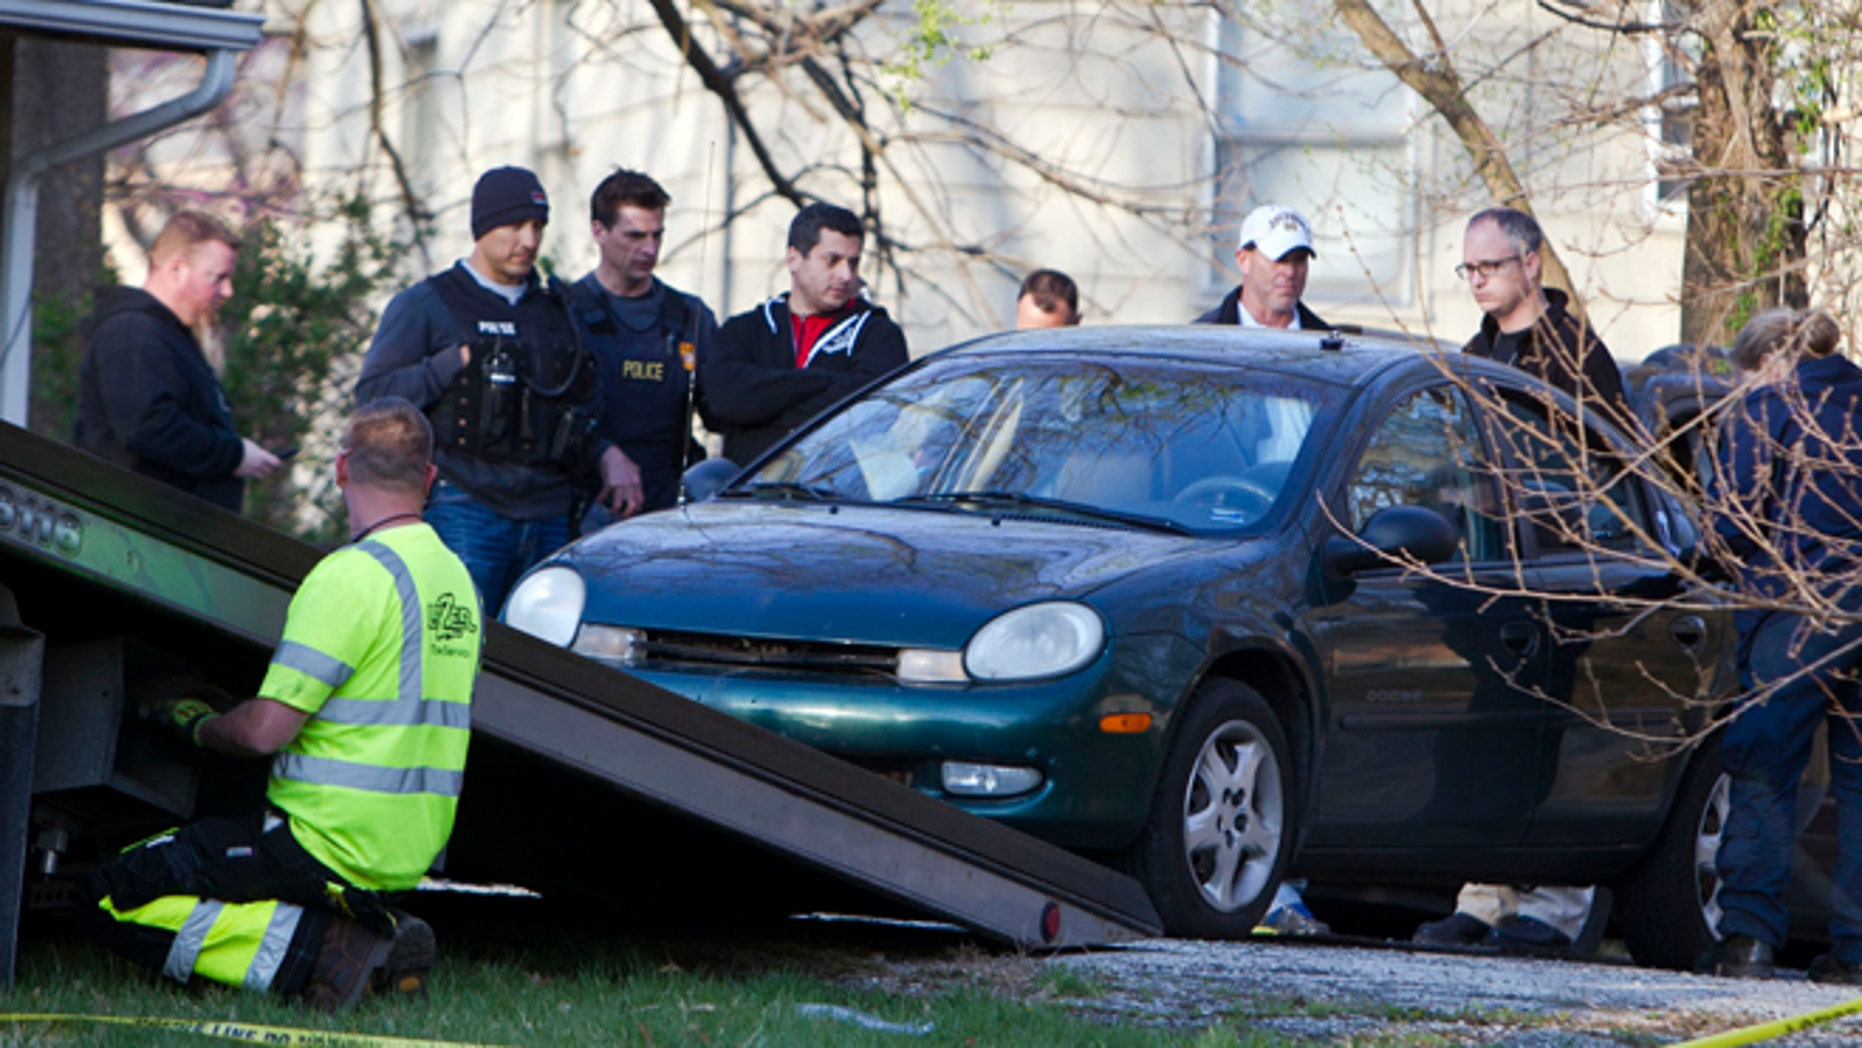 April 17: A car is removed by Kansas City police from the house, far right, of a Grandview man suspected in a series of shootings that have occurred on area roadways since early March, according to police.